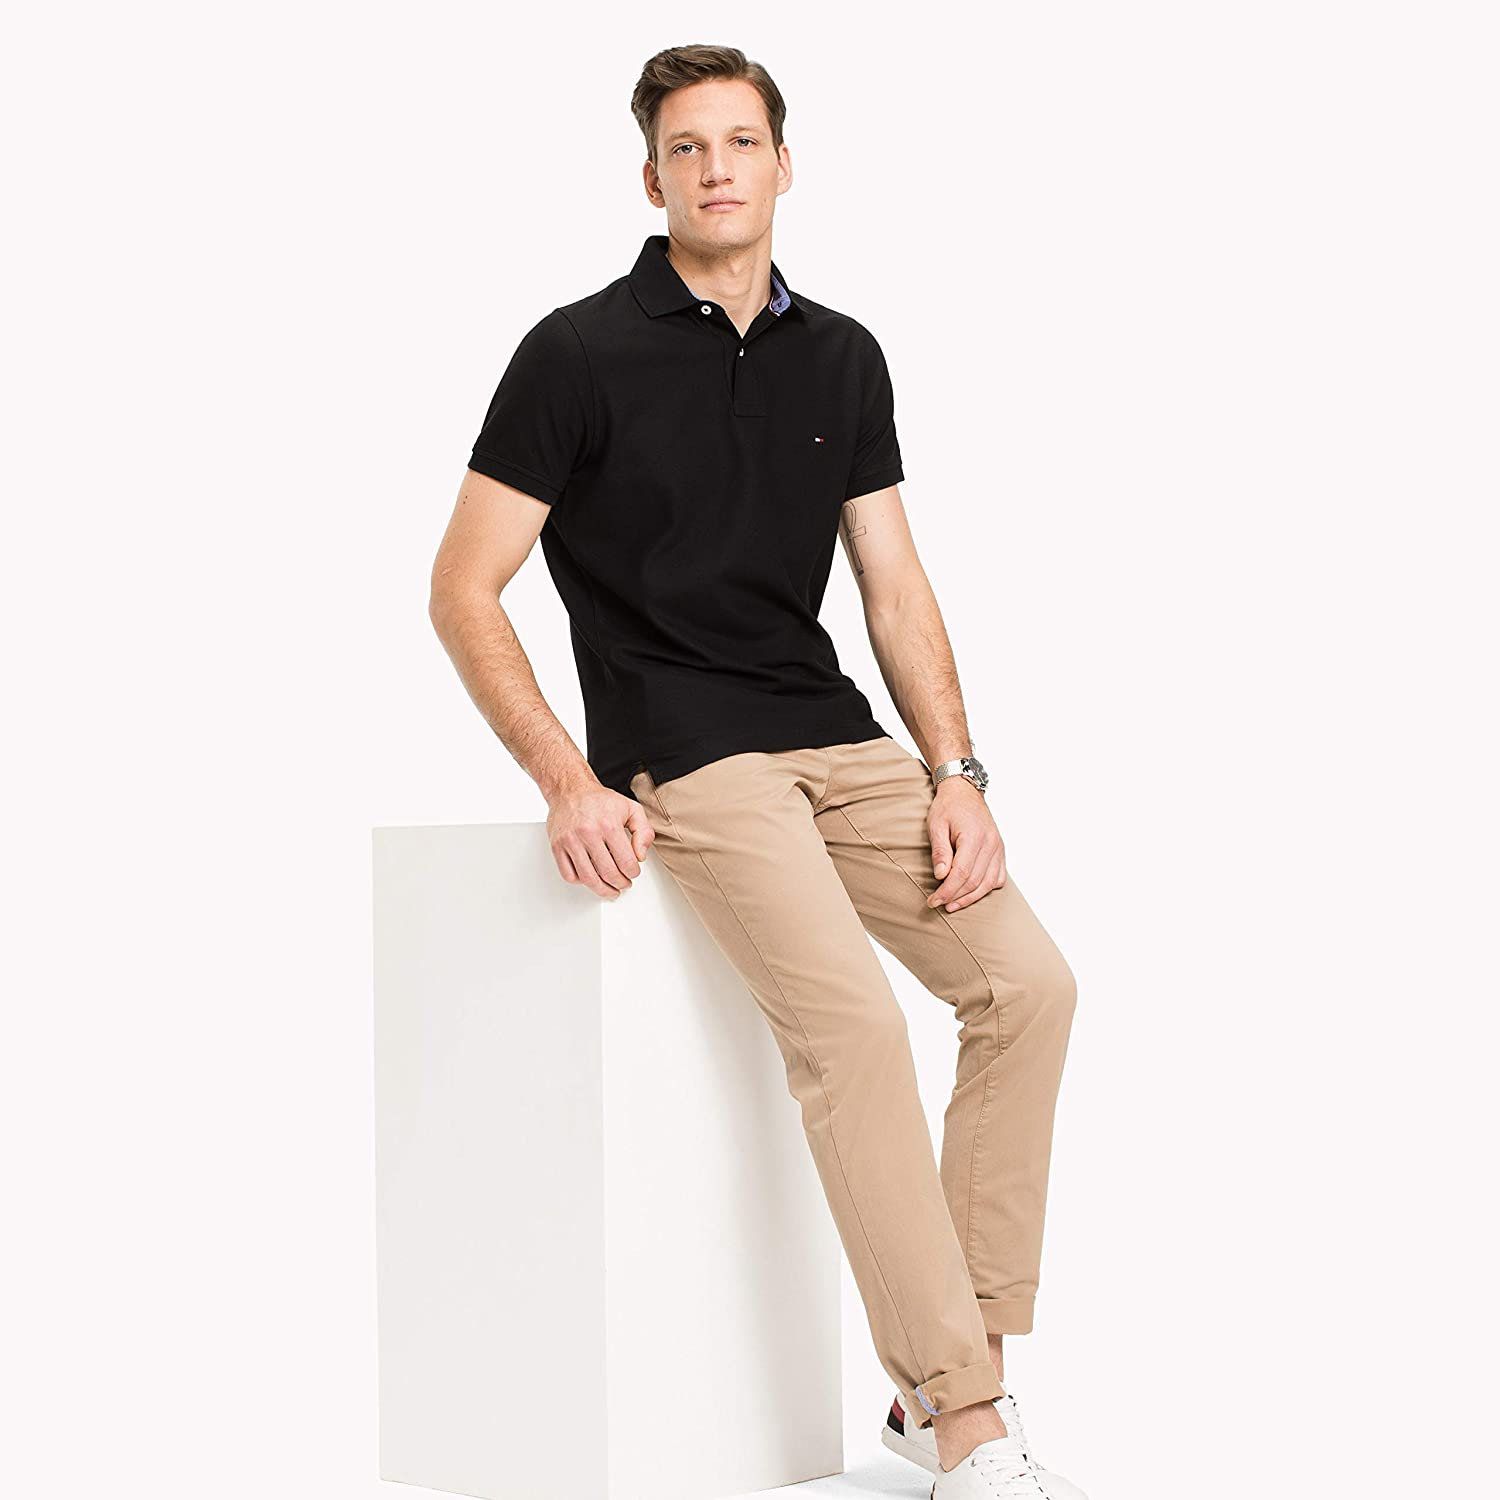 ccfe6d19f20ff8 Tommy Hilfiger Polo Shirts India – Fertilizer Society of Tanzania